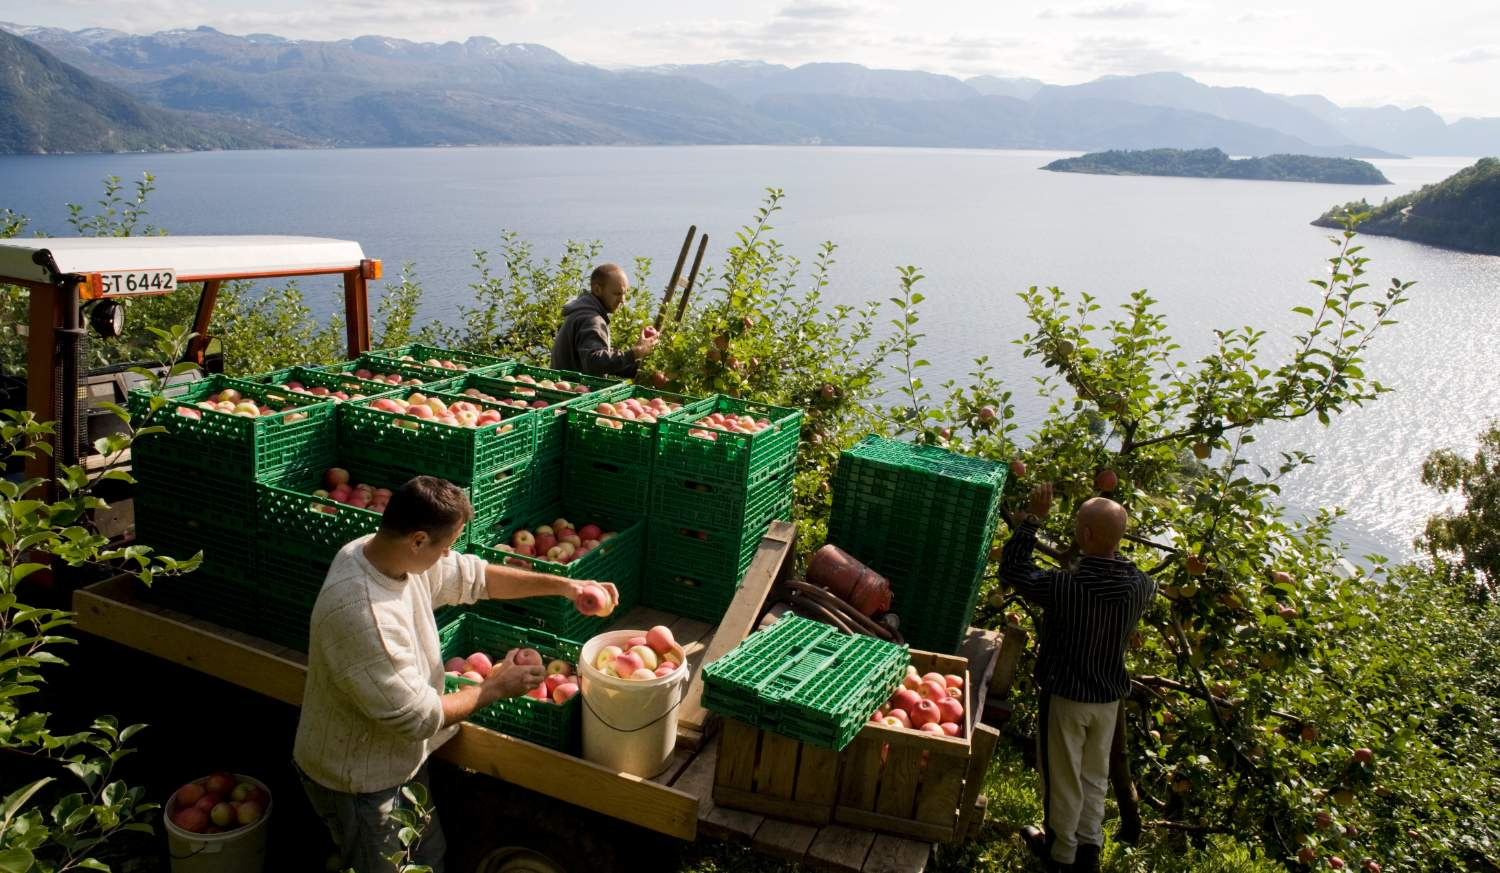 Apples from Norway - Hardanger apples